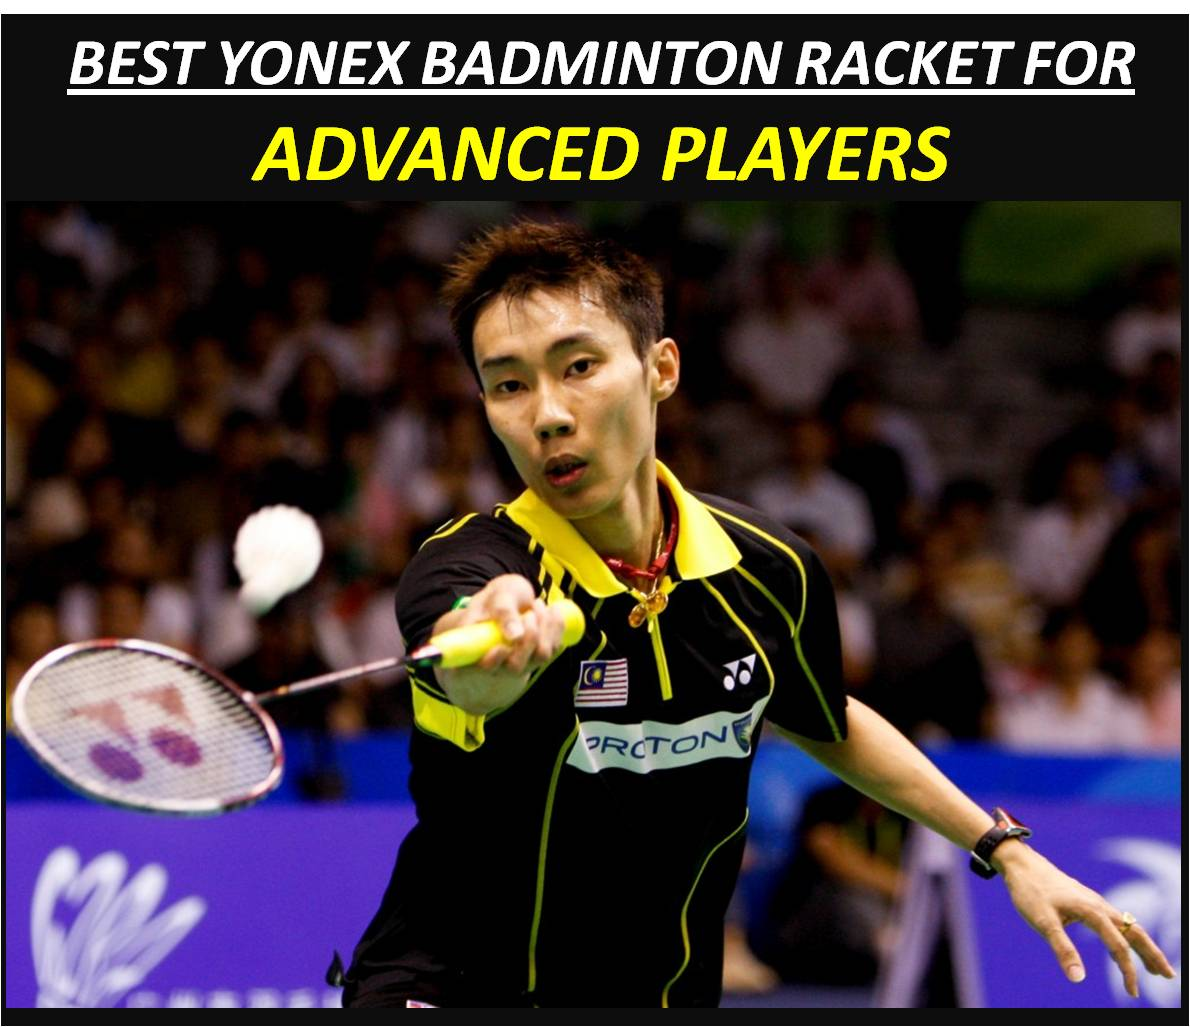 BEST YONEX BADMINTON RACKET FOR ADVANCED PLAYERS